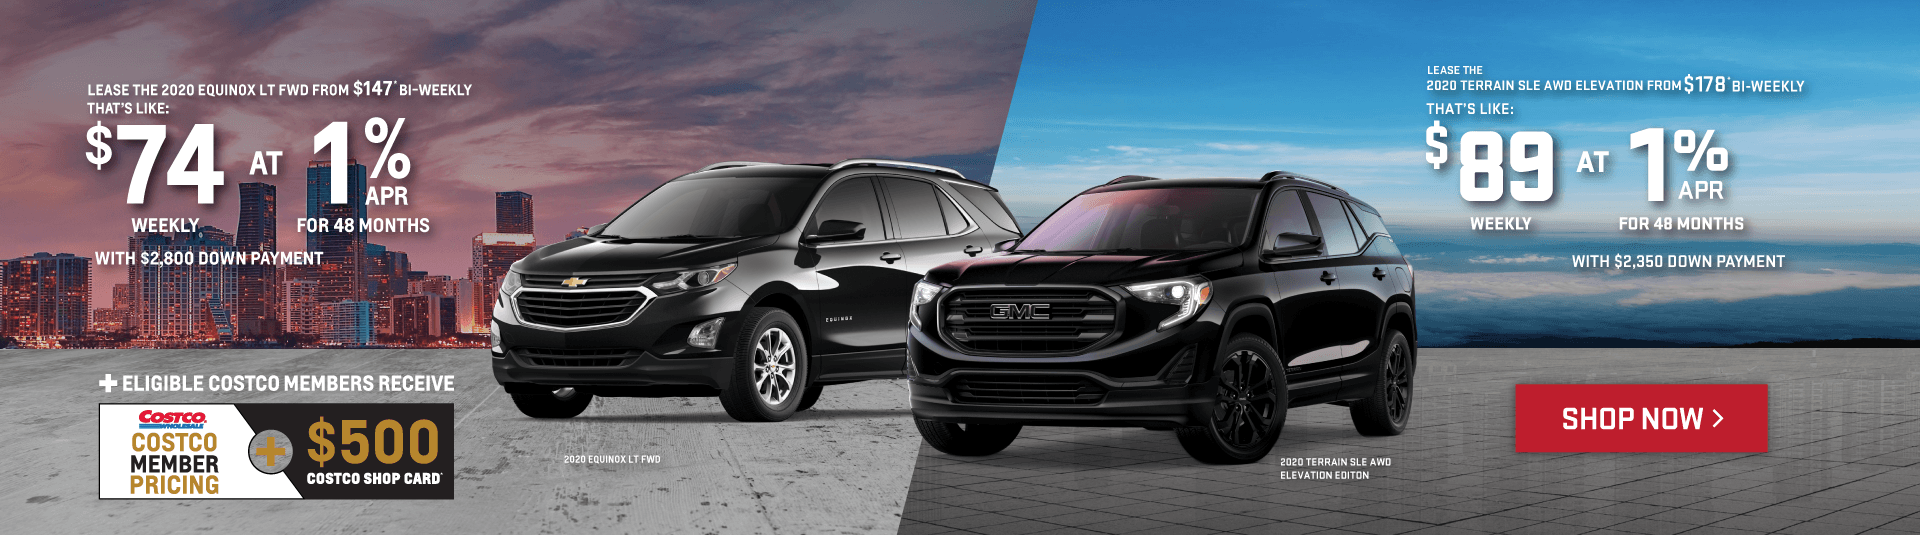 2020 Chevrolet Equinox and GMC Terrain Special Pricing in Toronto